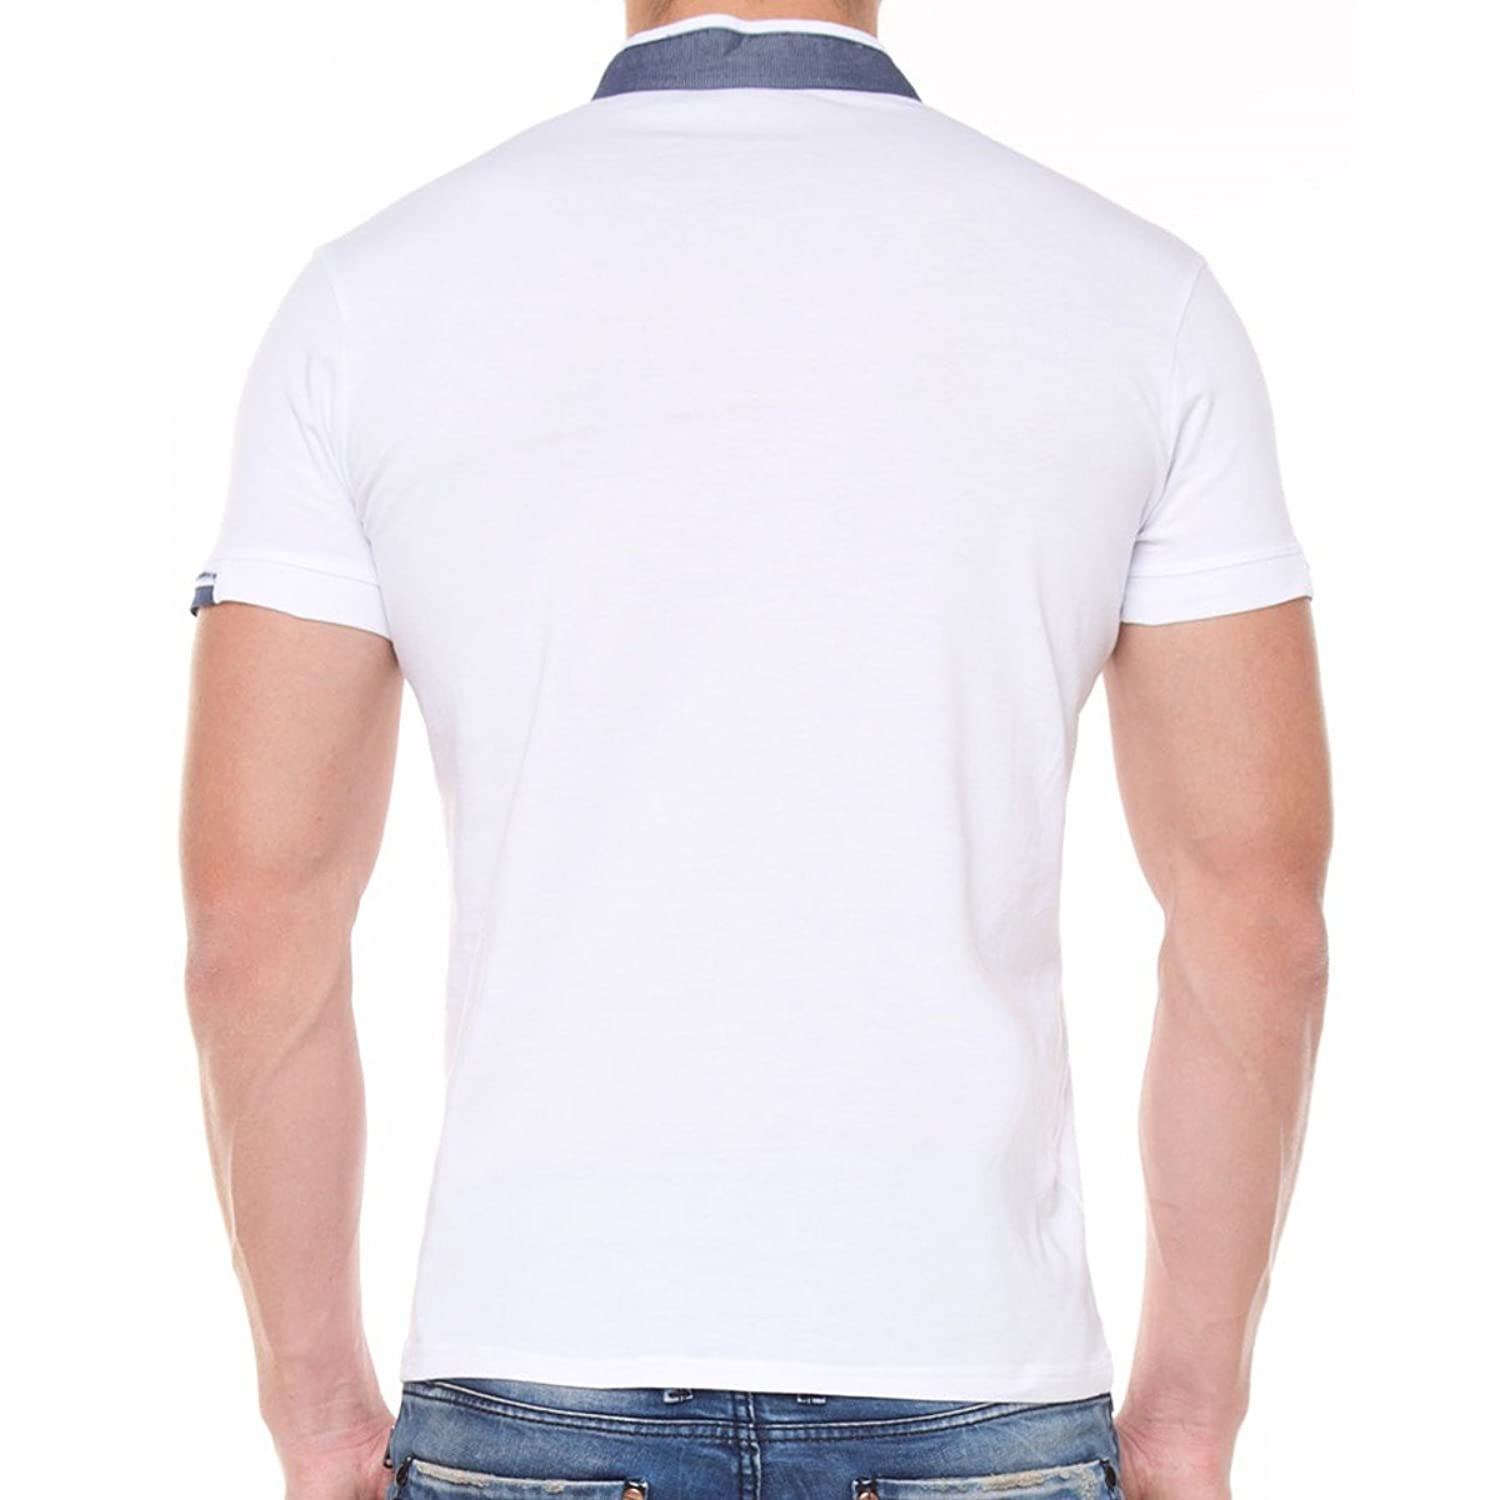 &AMP, Cipo Baxx Line Contrast Men's Denim Shirt with Stand-Up Collar White